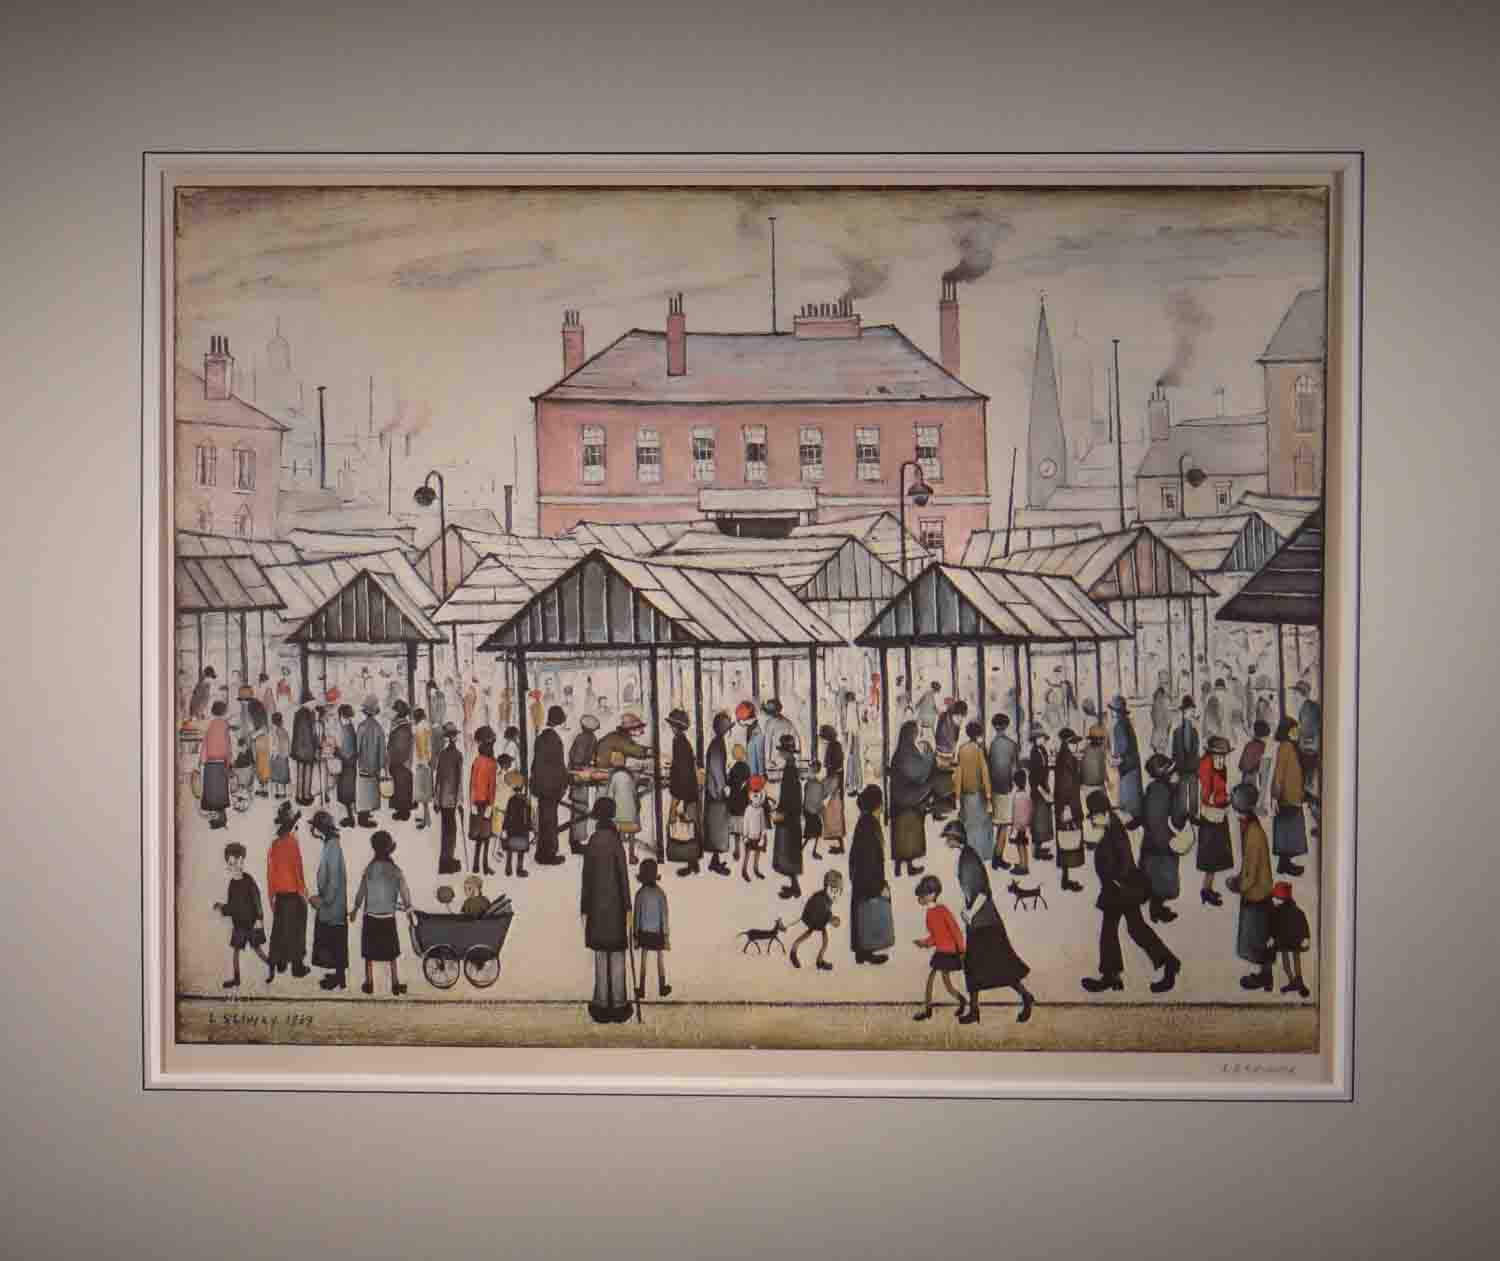 lowry, market scene in a northern town, signed print lslowry